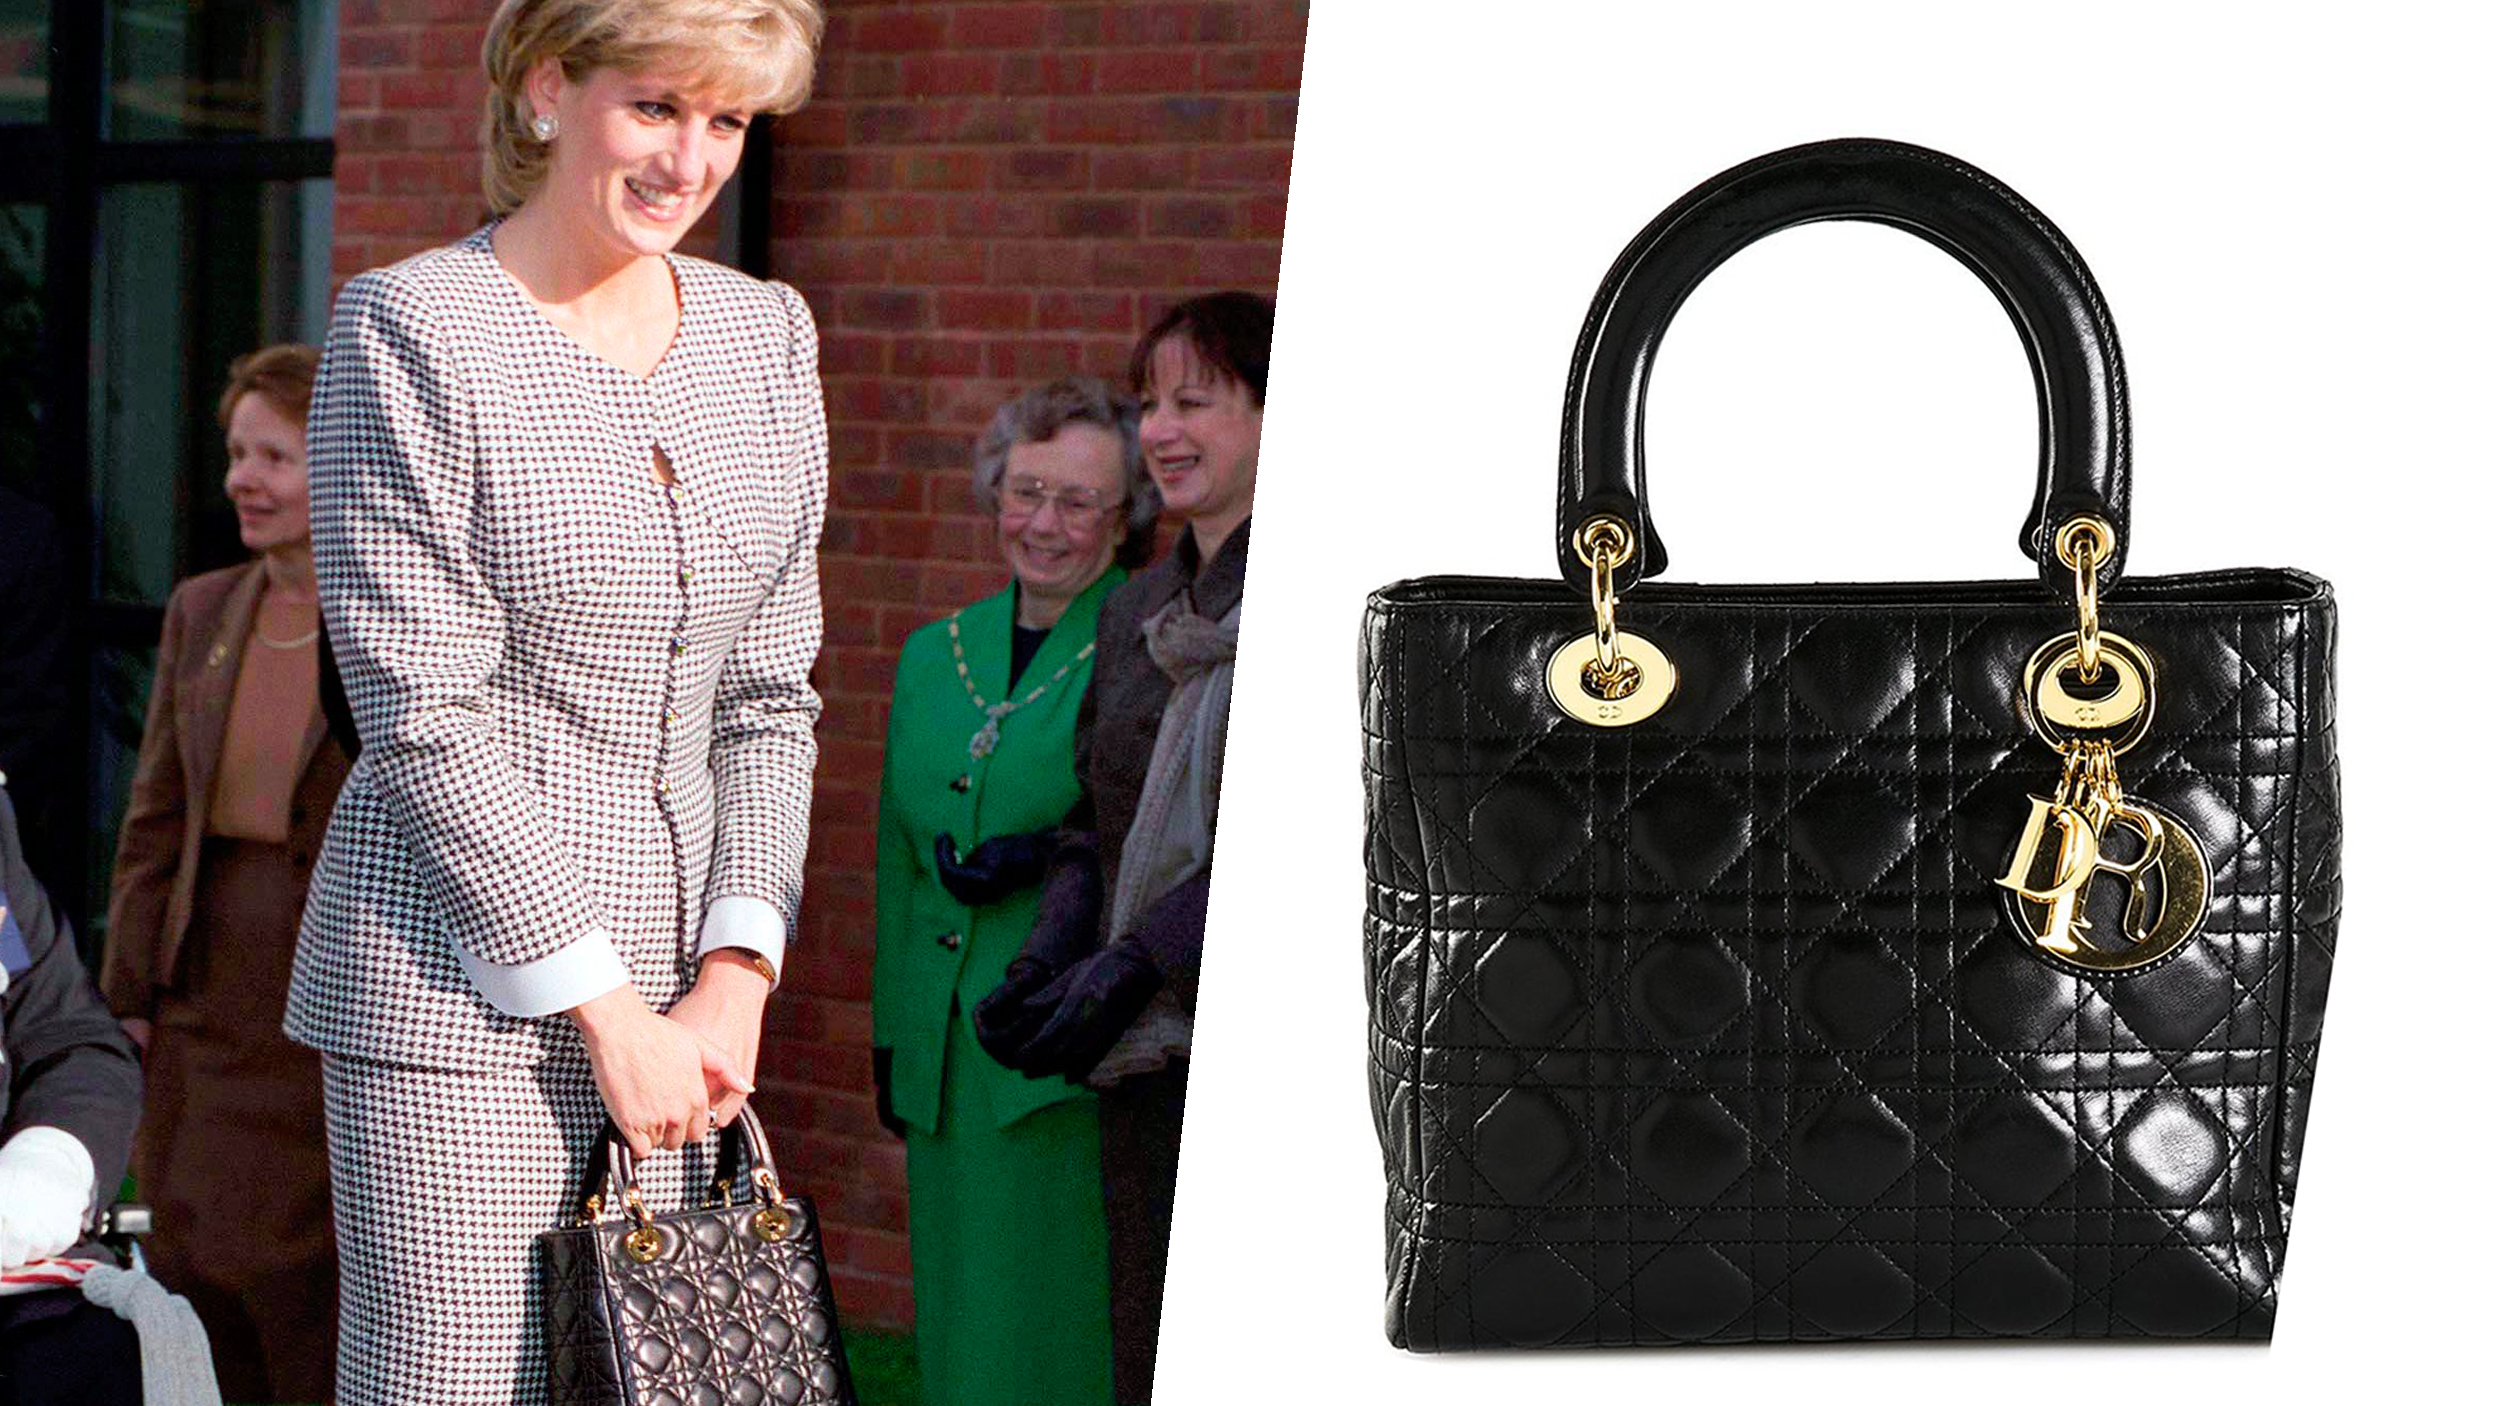 539b05ae0dd Iconic handbags and the women who inspired them